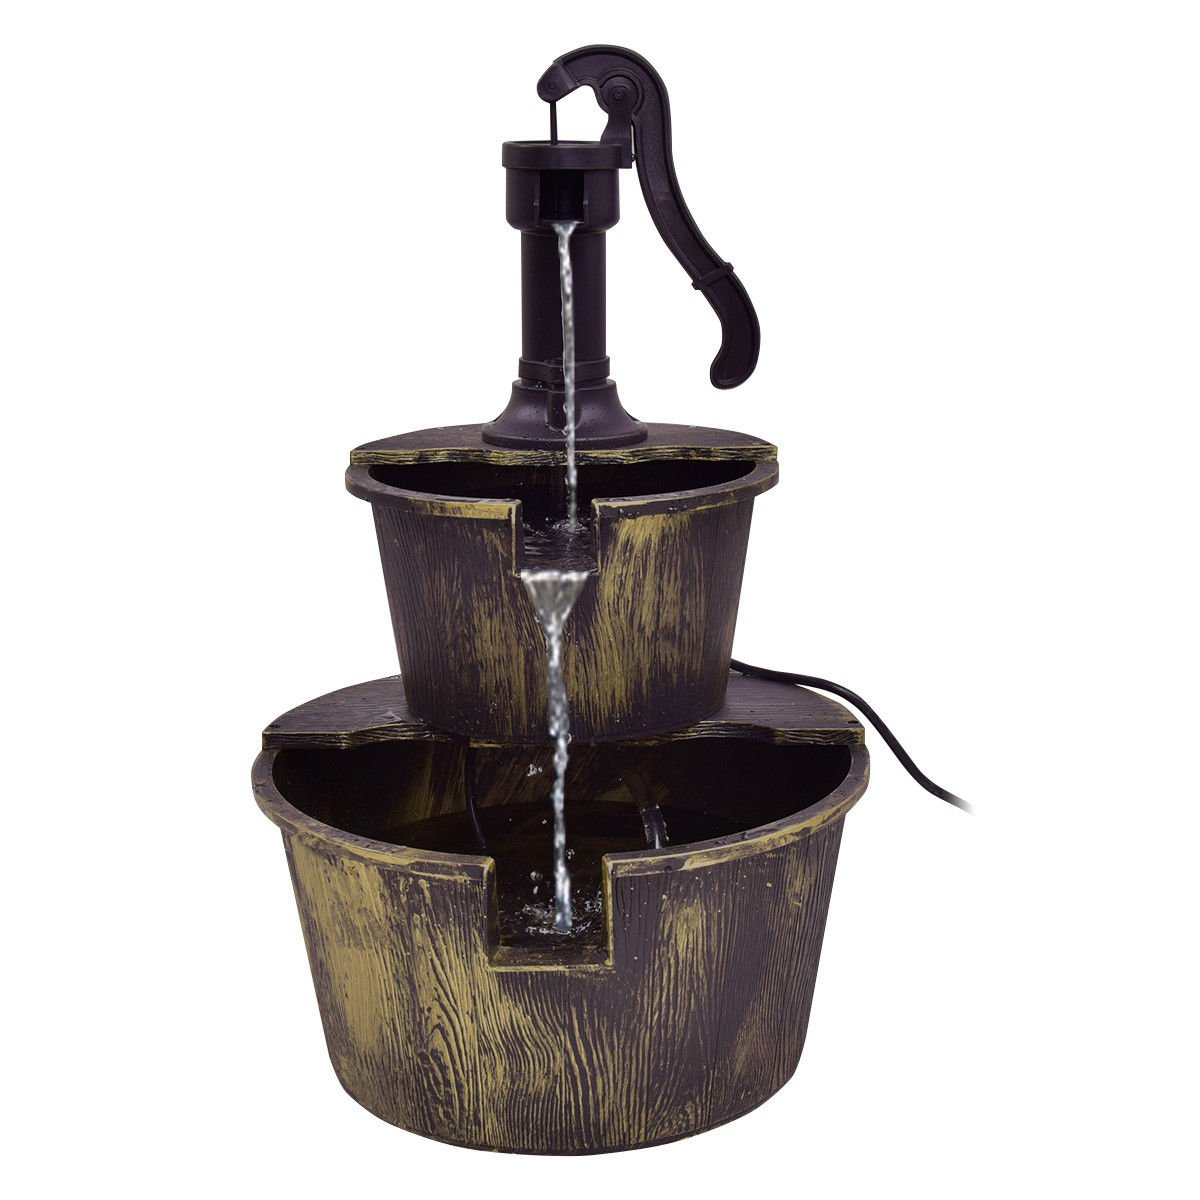 3 Tier Barrel Waterfall Fountain Barrel Water Fountain Pump Outdoor Garden